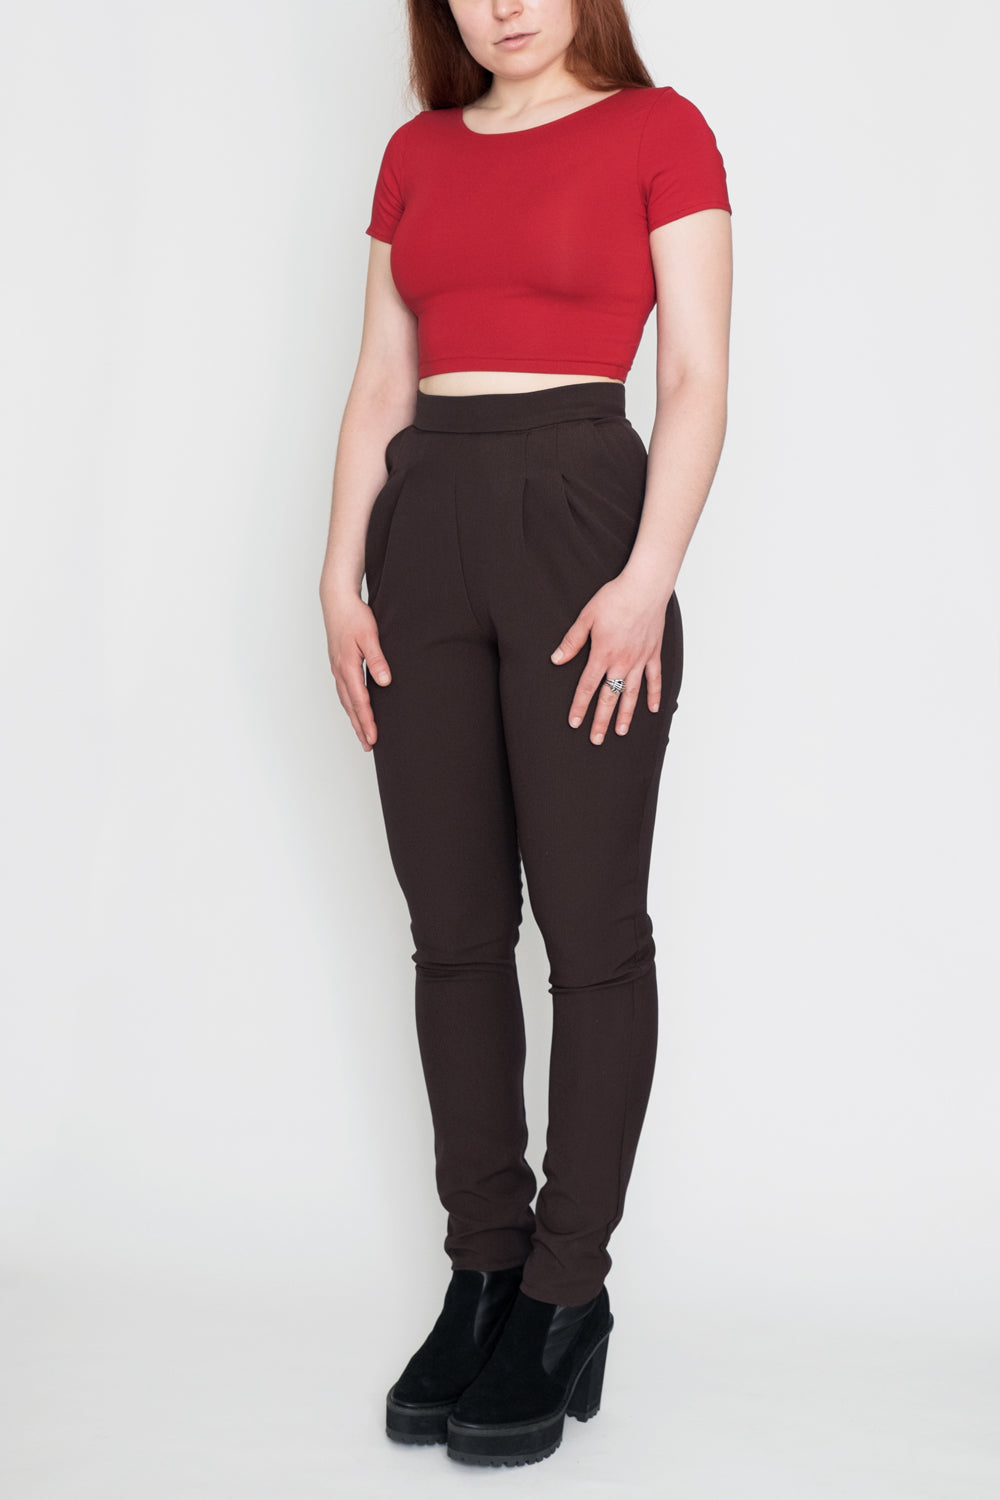 L.A. woman pants brown